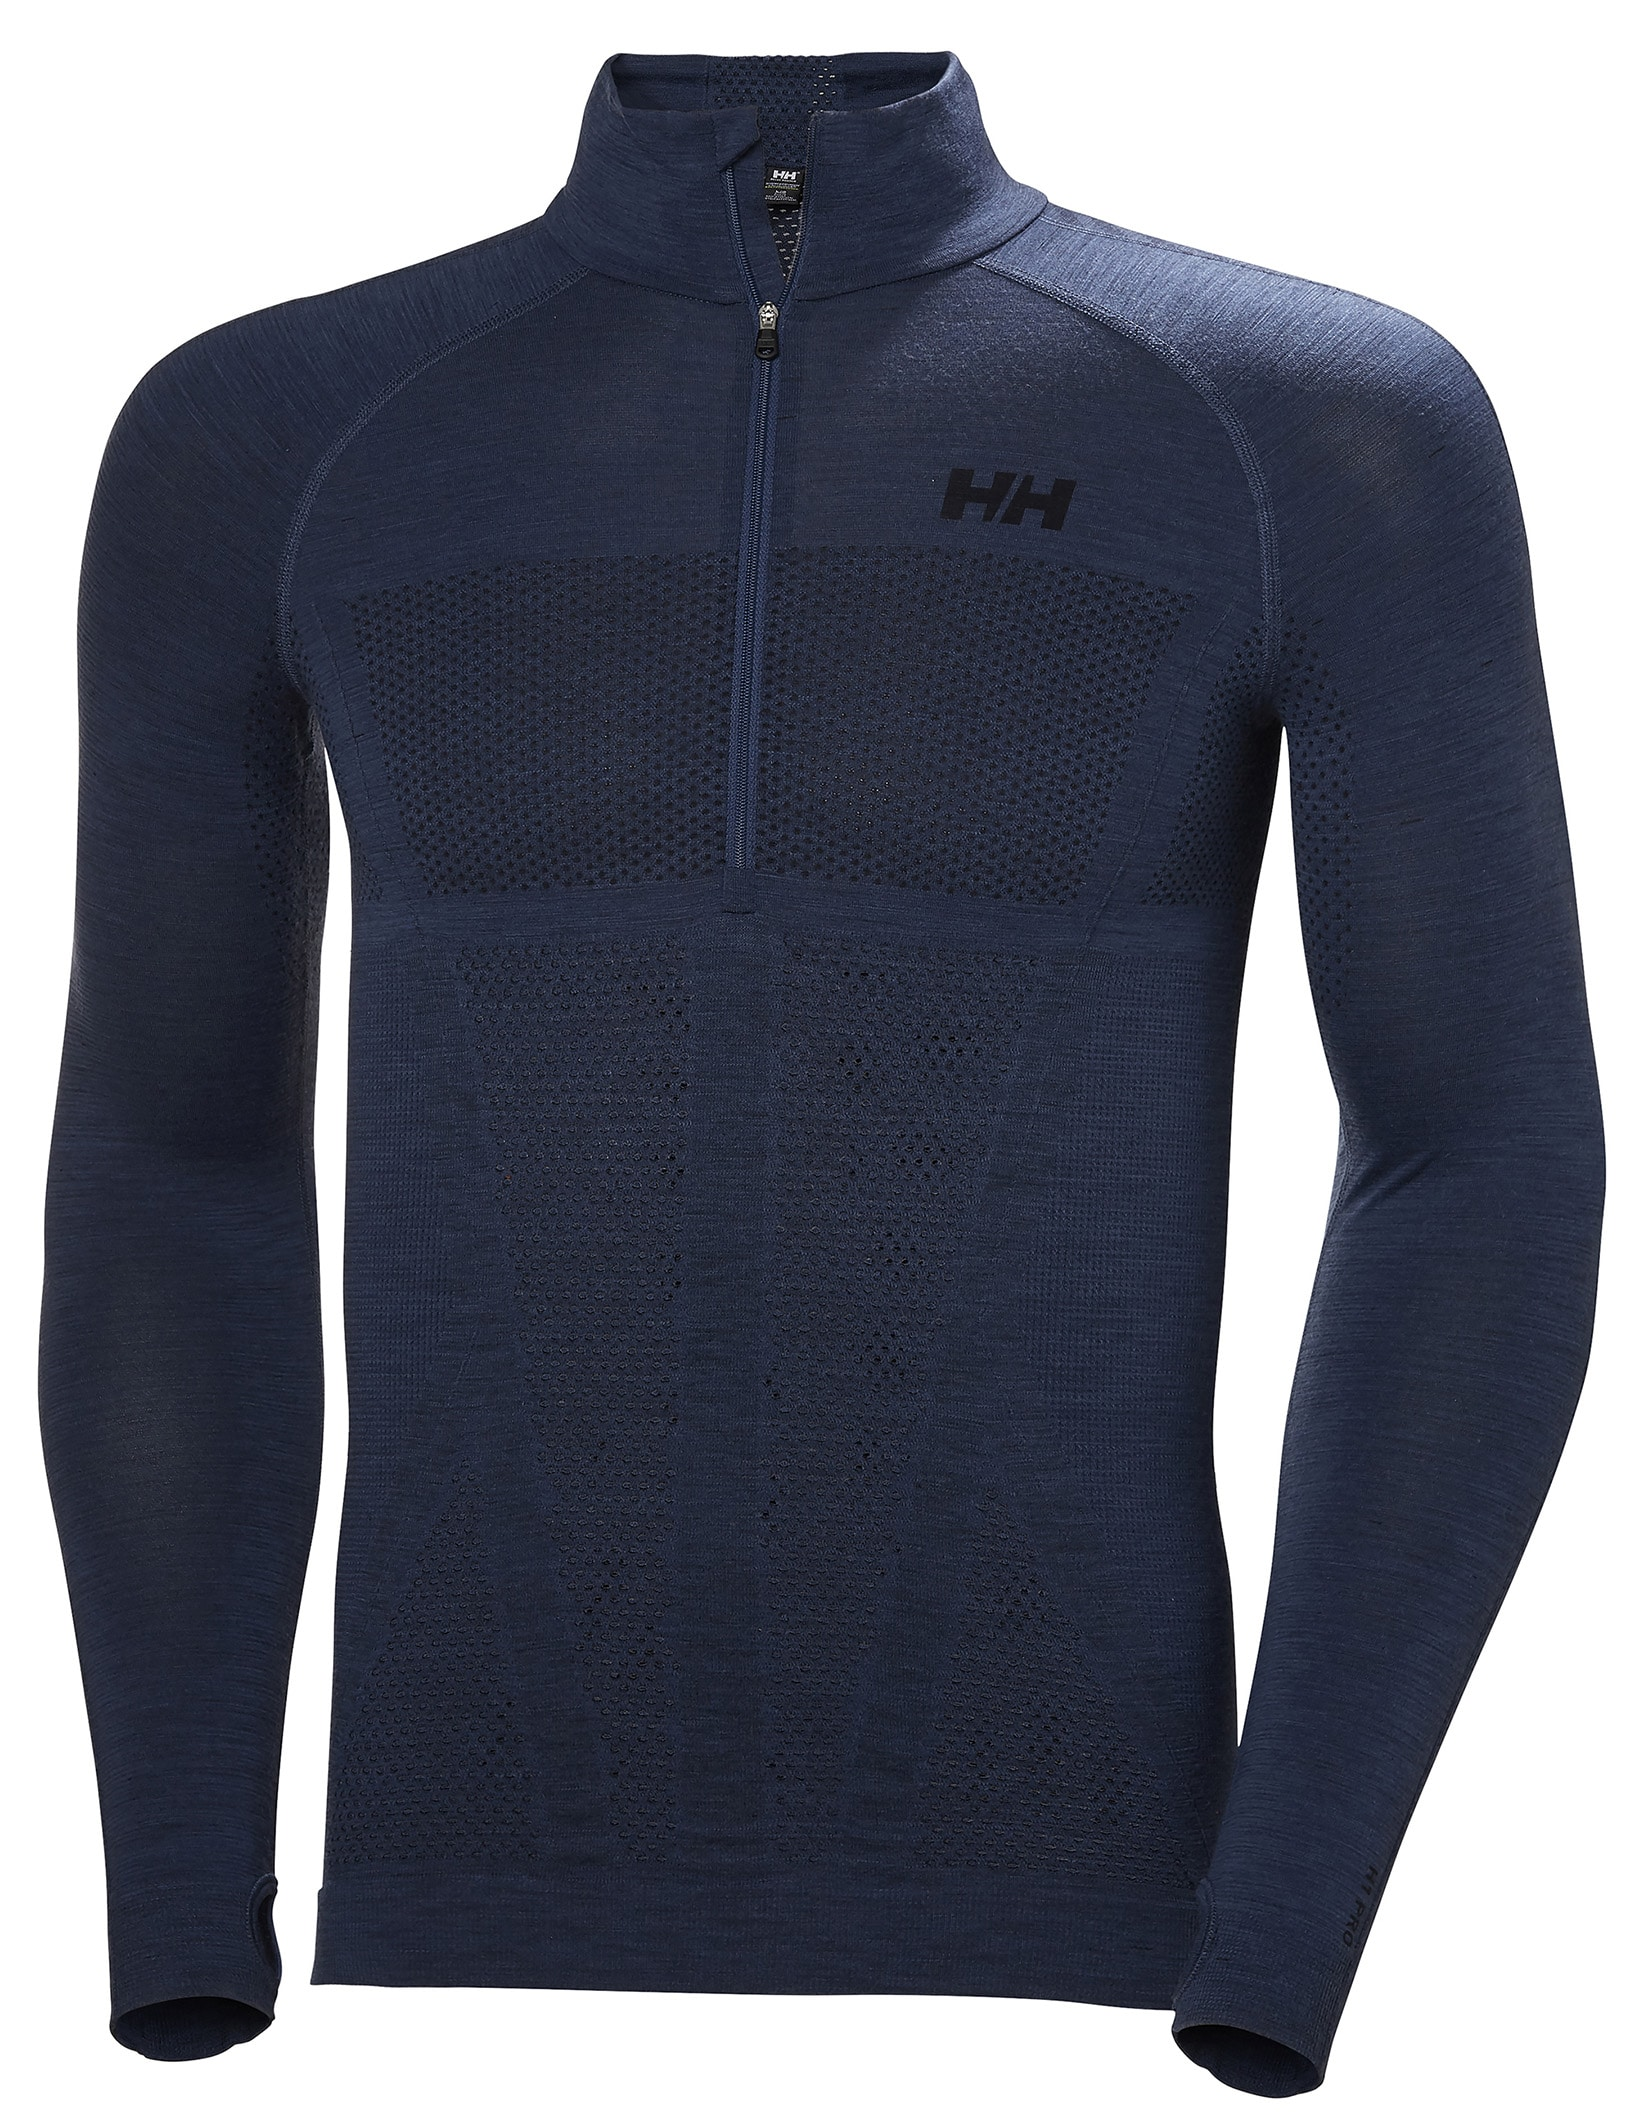 Helly Hansen body mapping primera capa base layer